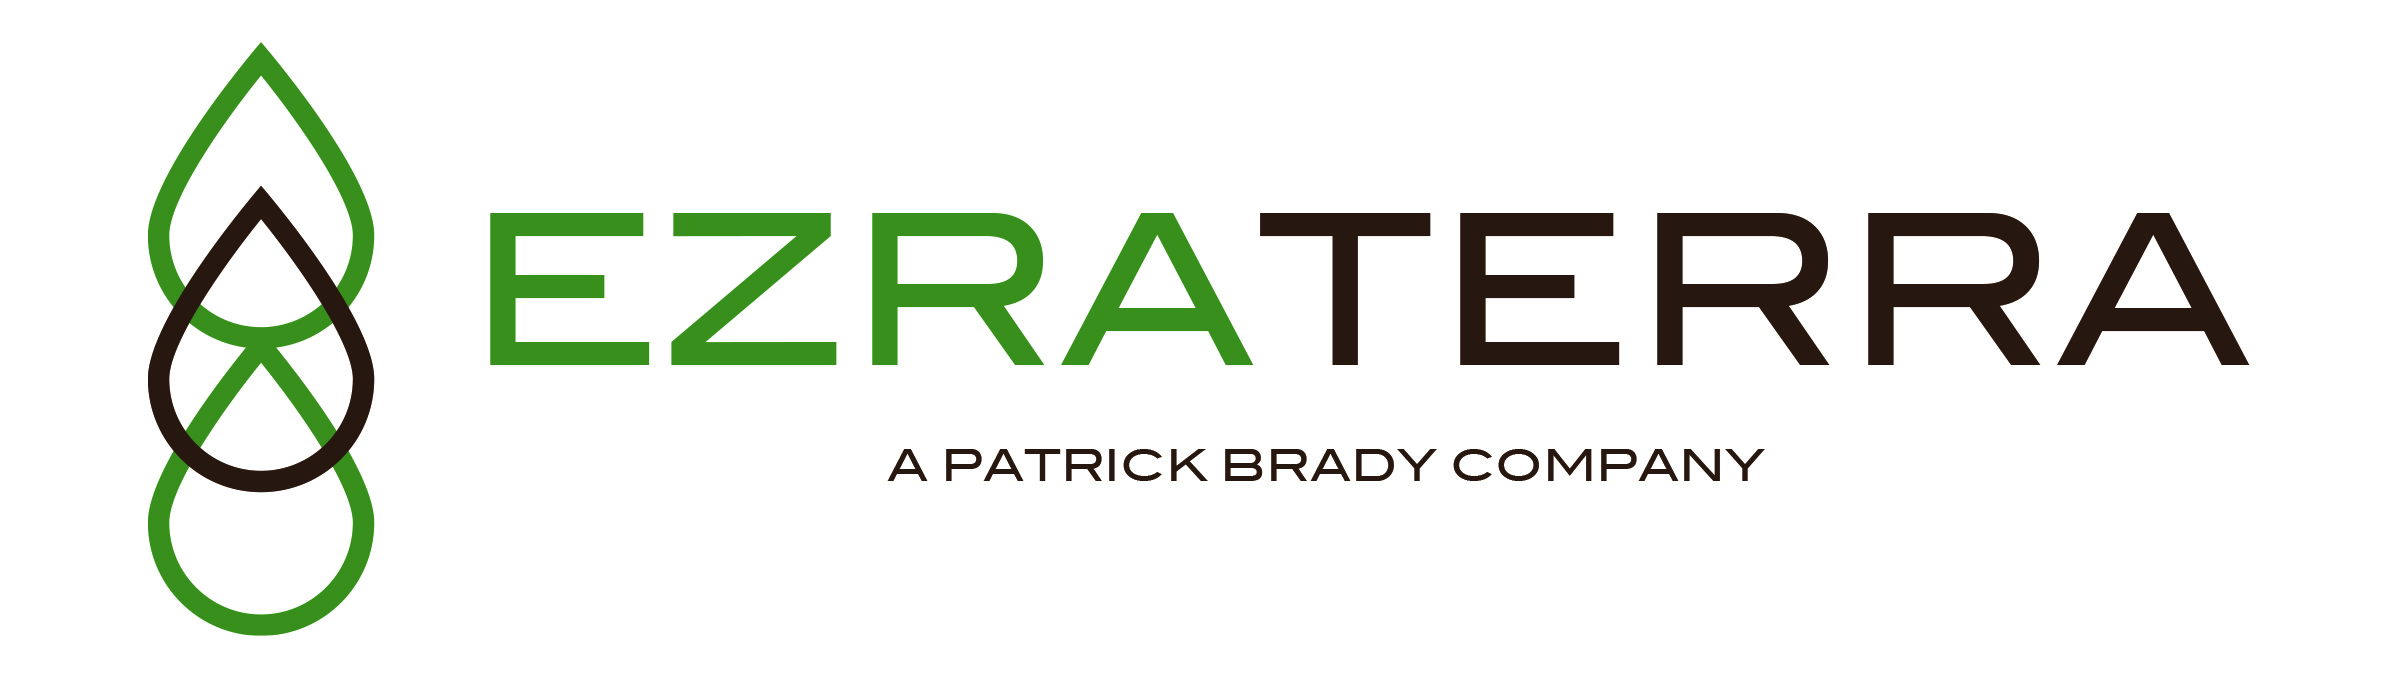 EzraTerra Logo slogan